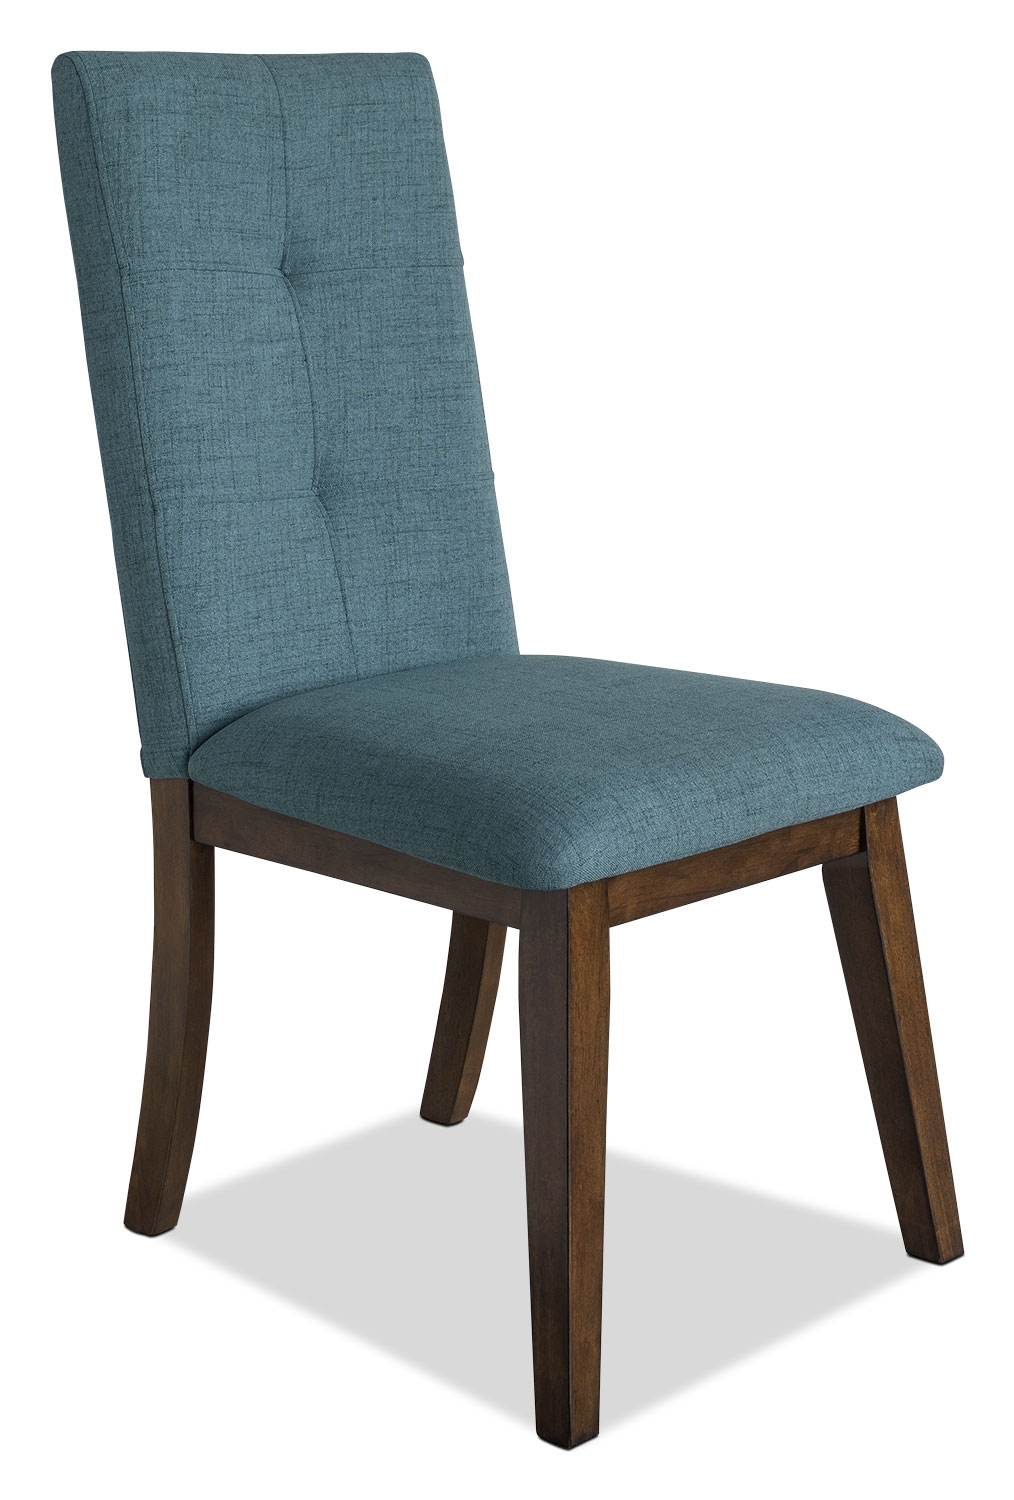 Chelsea fabric dining chair aqua united furniture for Fabric dining room chairs